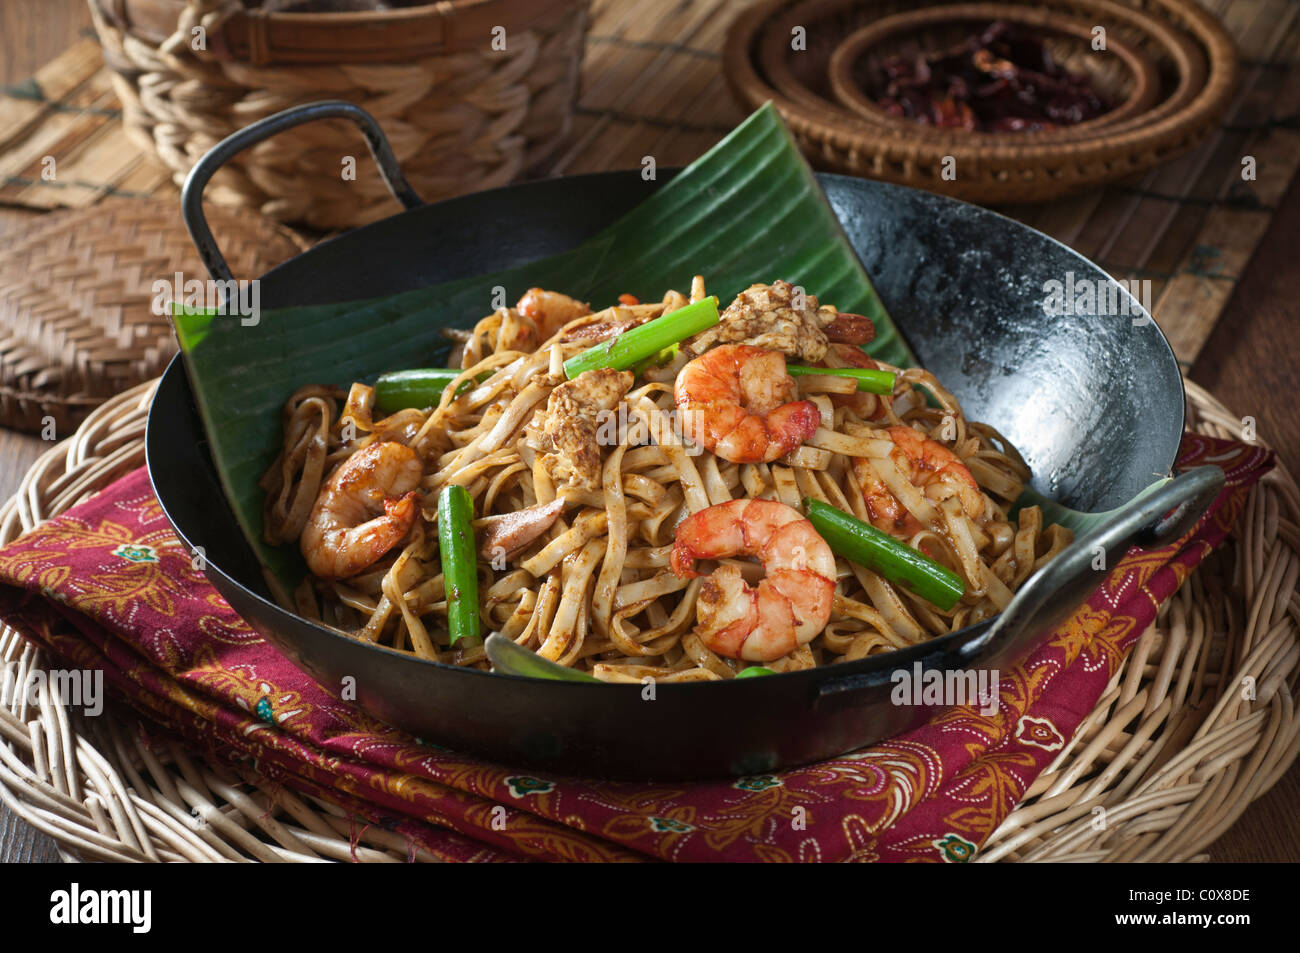 Char kway teow stir fried noodles on banana leaf south for Aja east asia cuisine